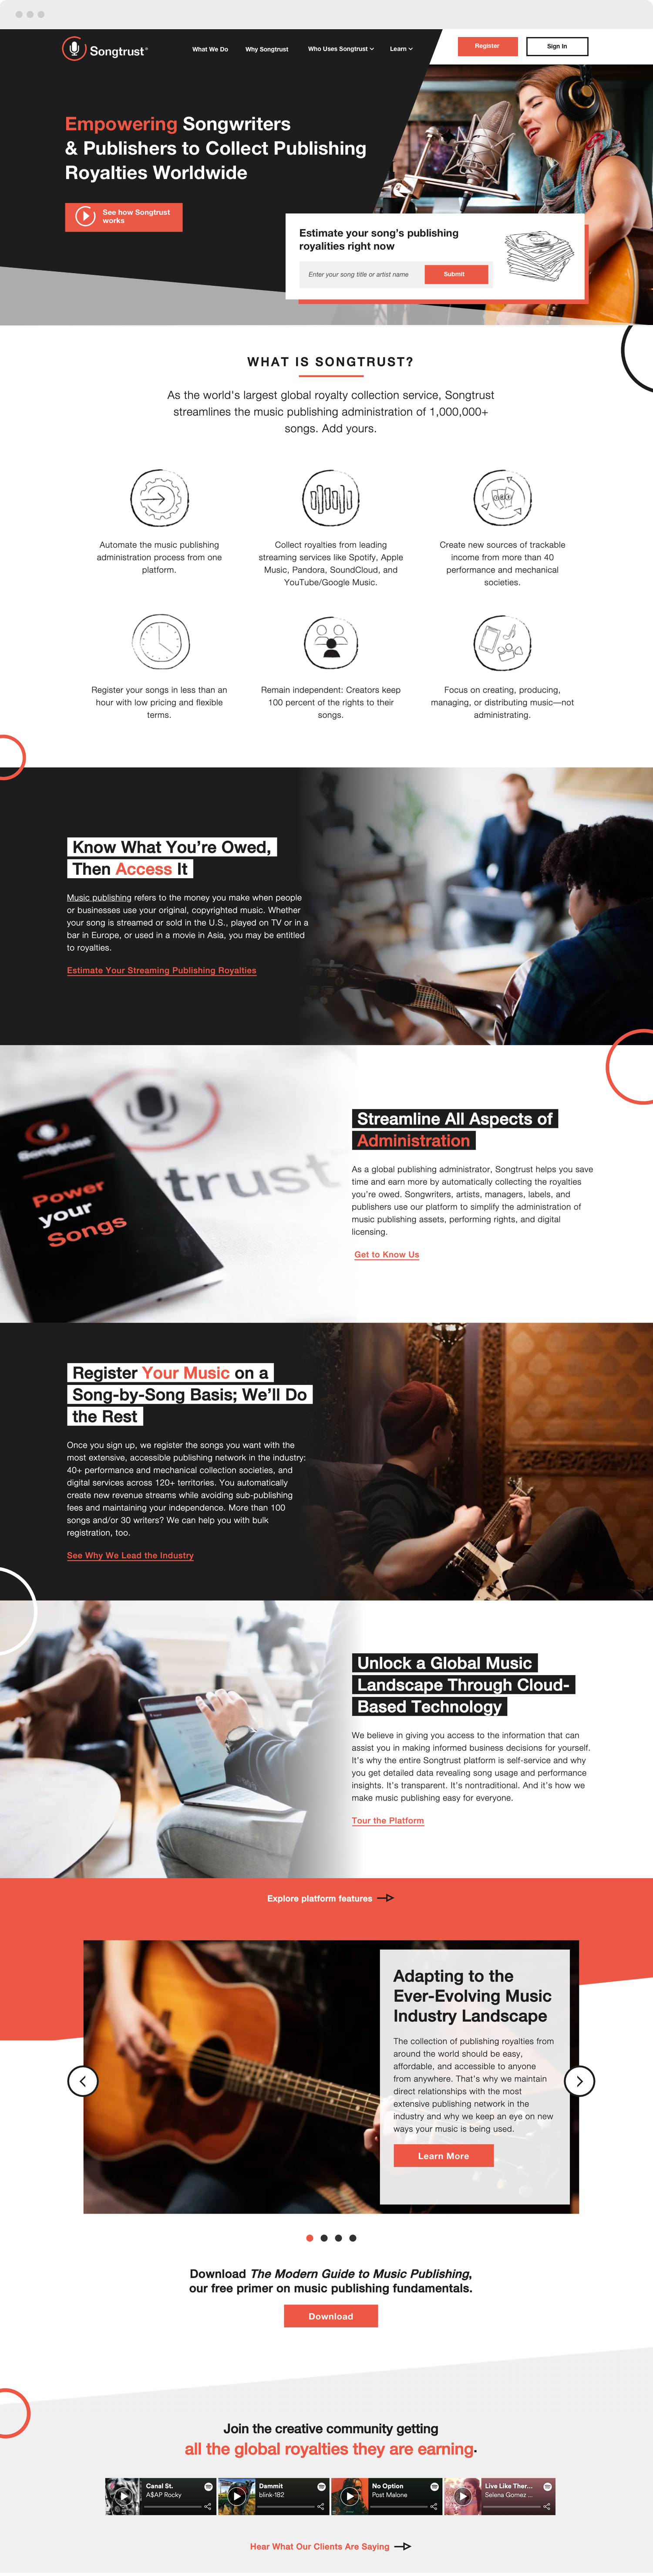 Songtrust Homepage on HubSpot CMS